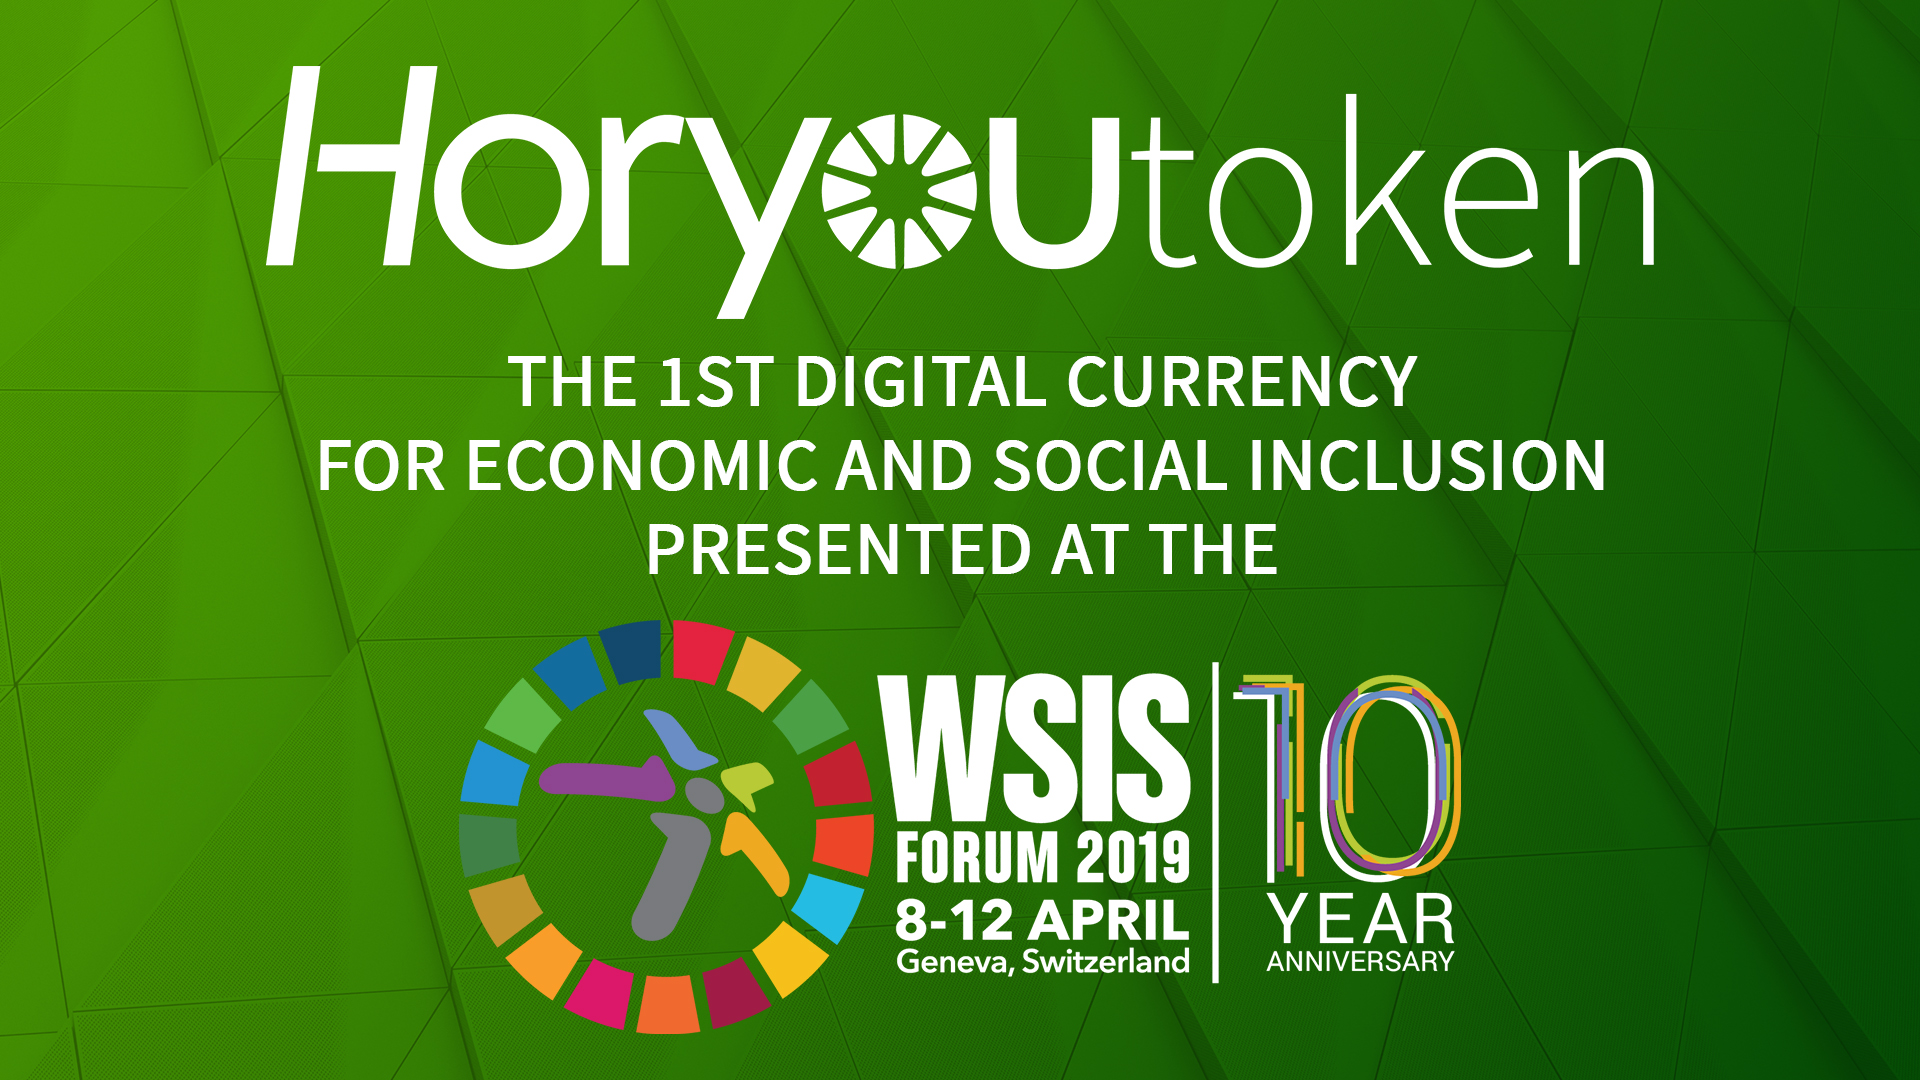 HoryouToken, the 1st Digital Currency for Economic and Social Inclusion and Advancement of the UN SDG's, was Presented at the WSIS Forum 2019